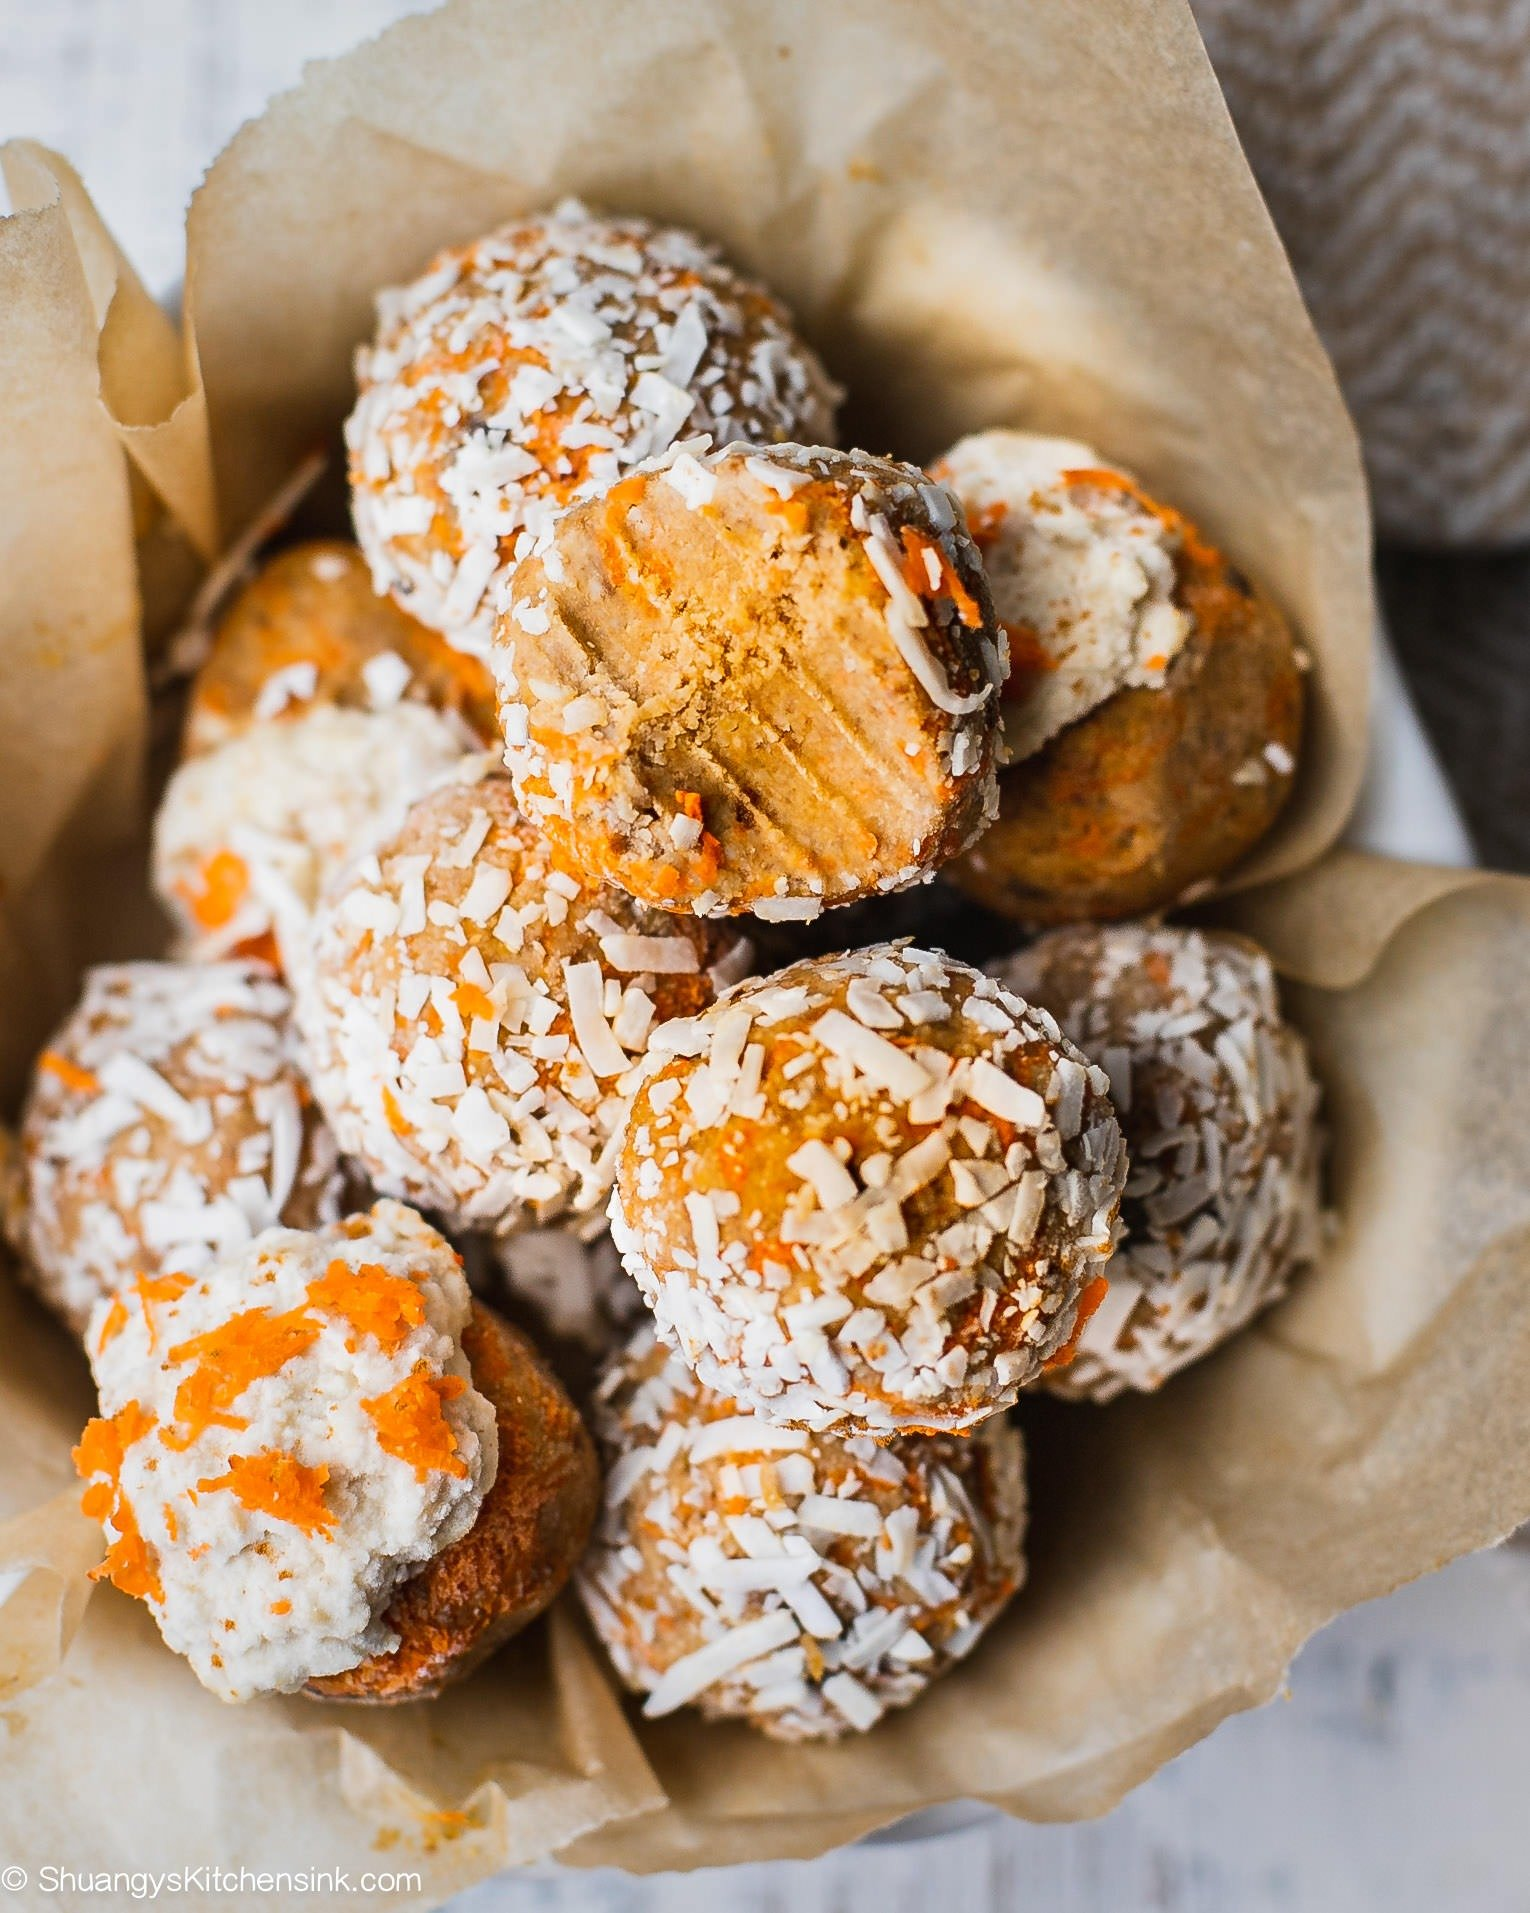 There is a pile of gooey and fudgy energy balls that are rolled in shaved coconut